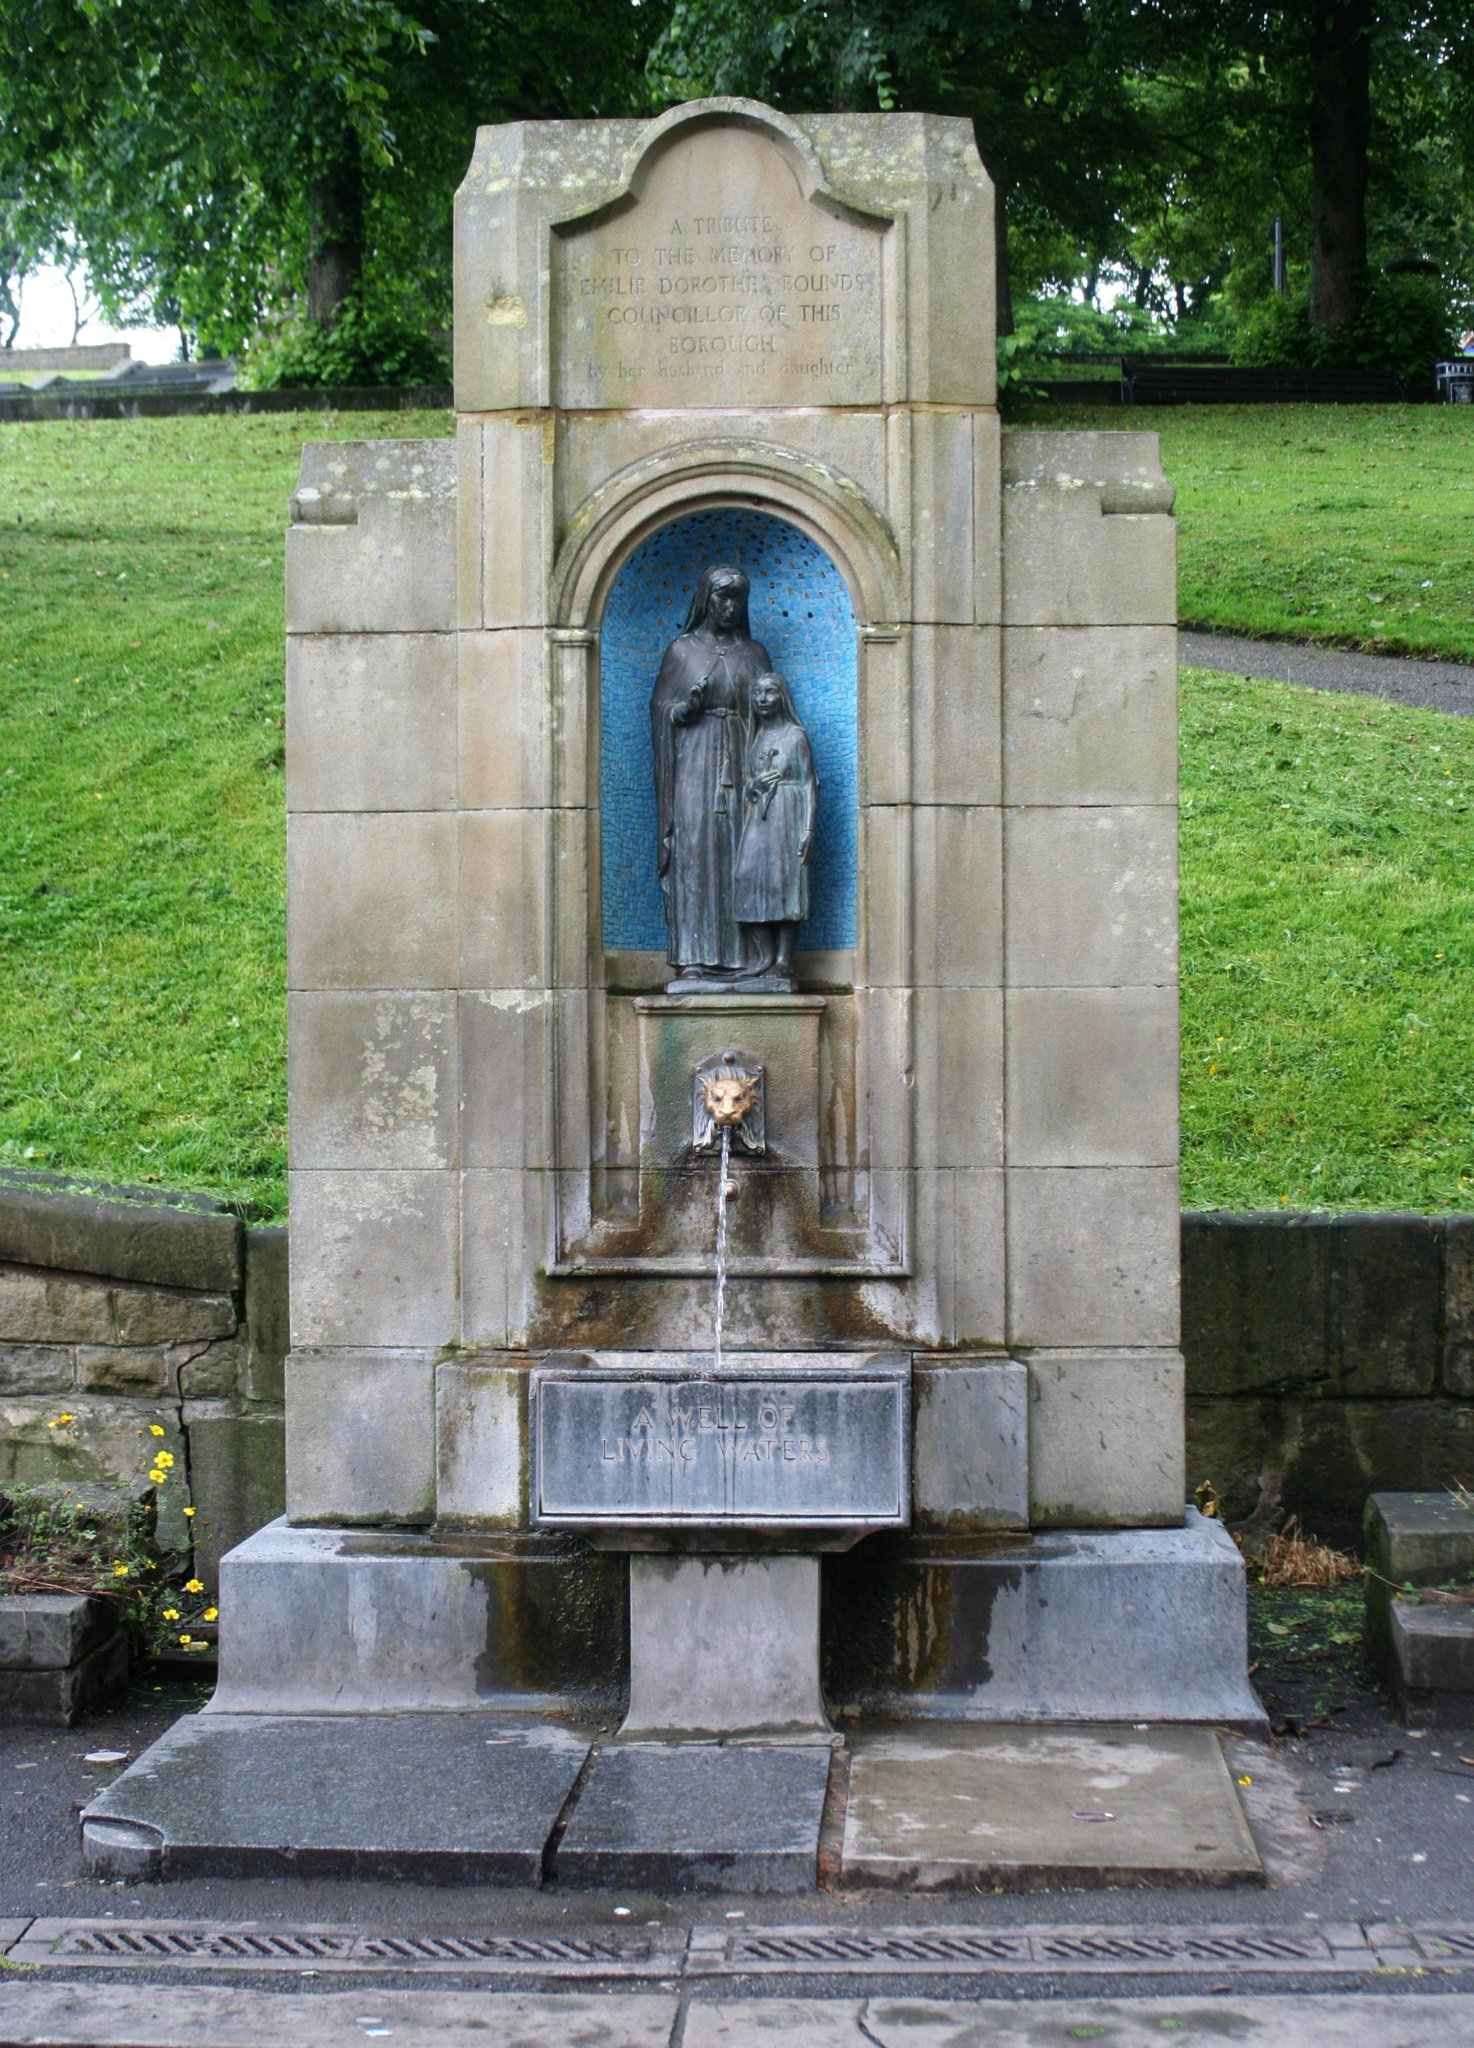 Spring well in Buxton